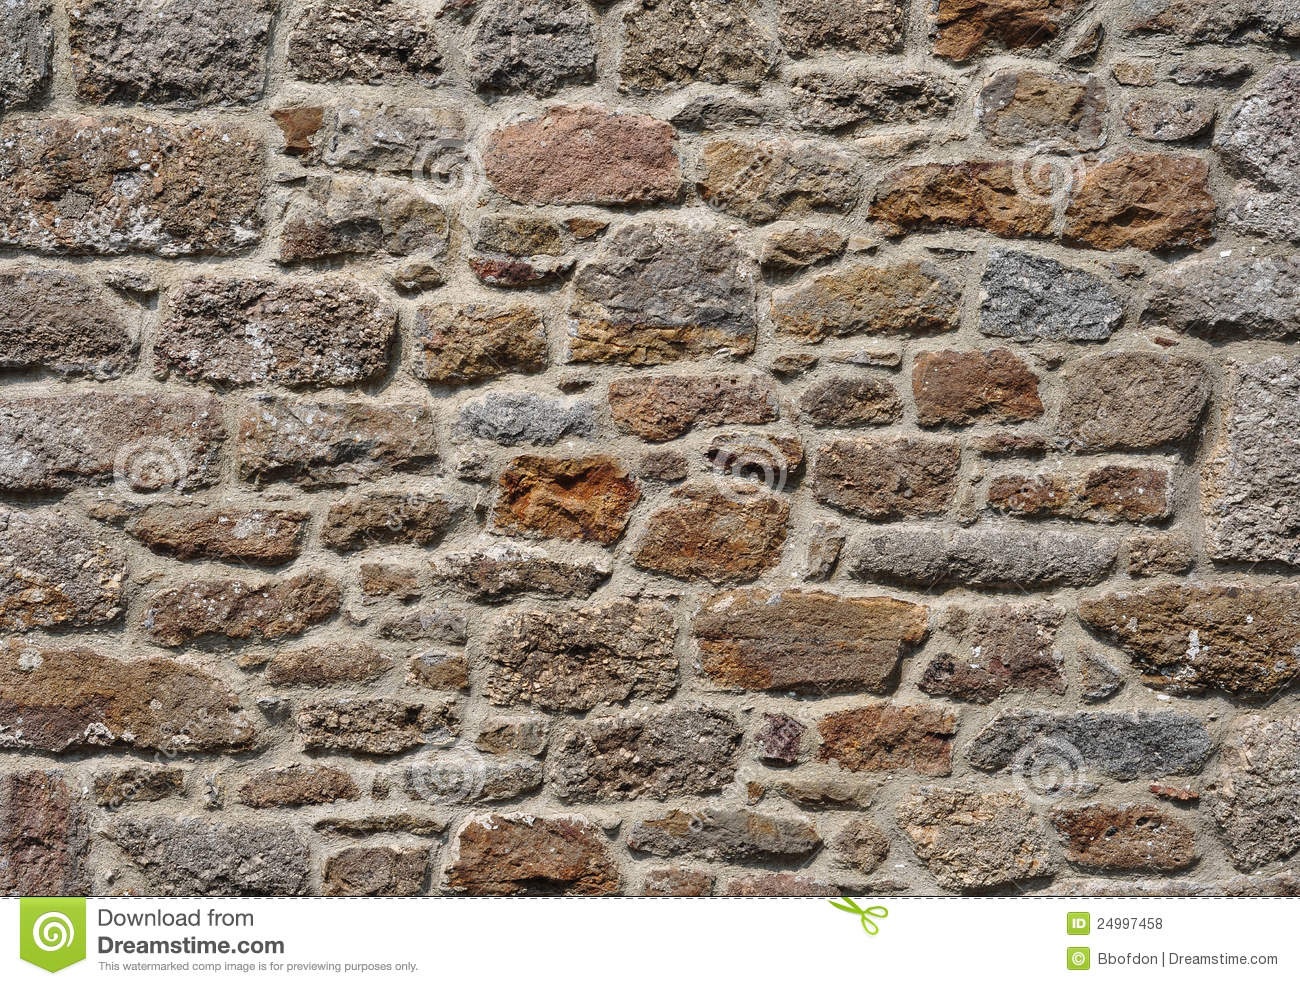 Mur en pierre de granit photos libres de droits image for Photo de granite